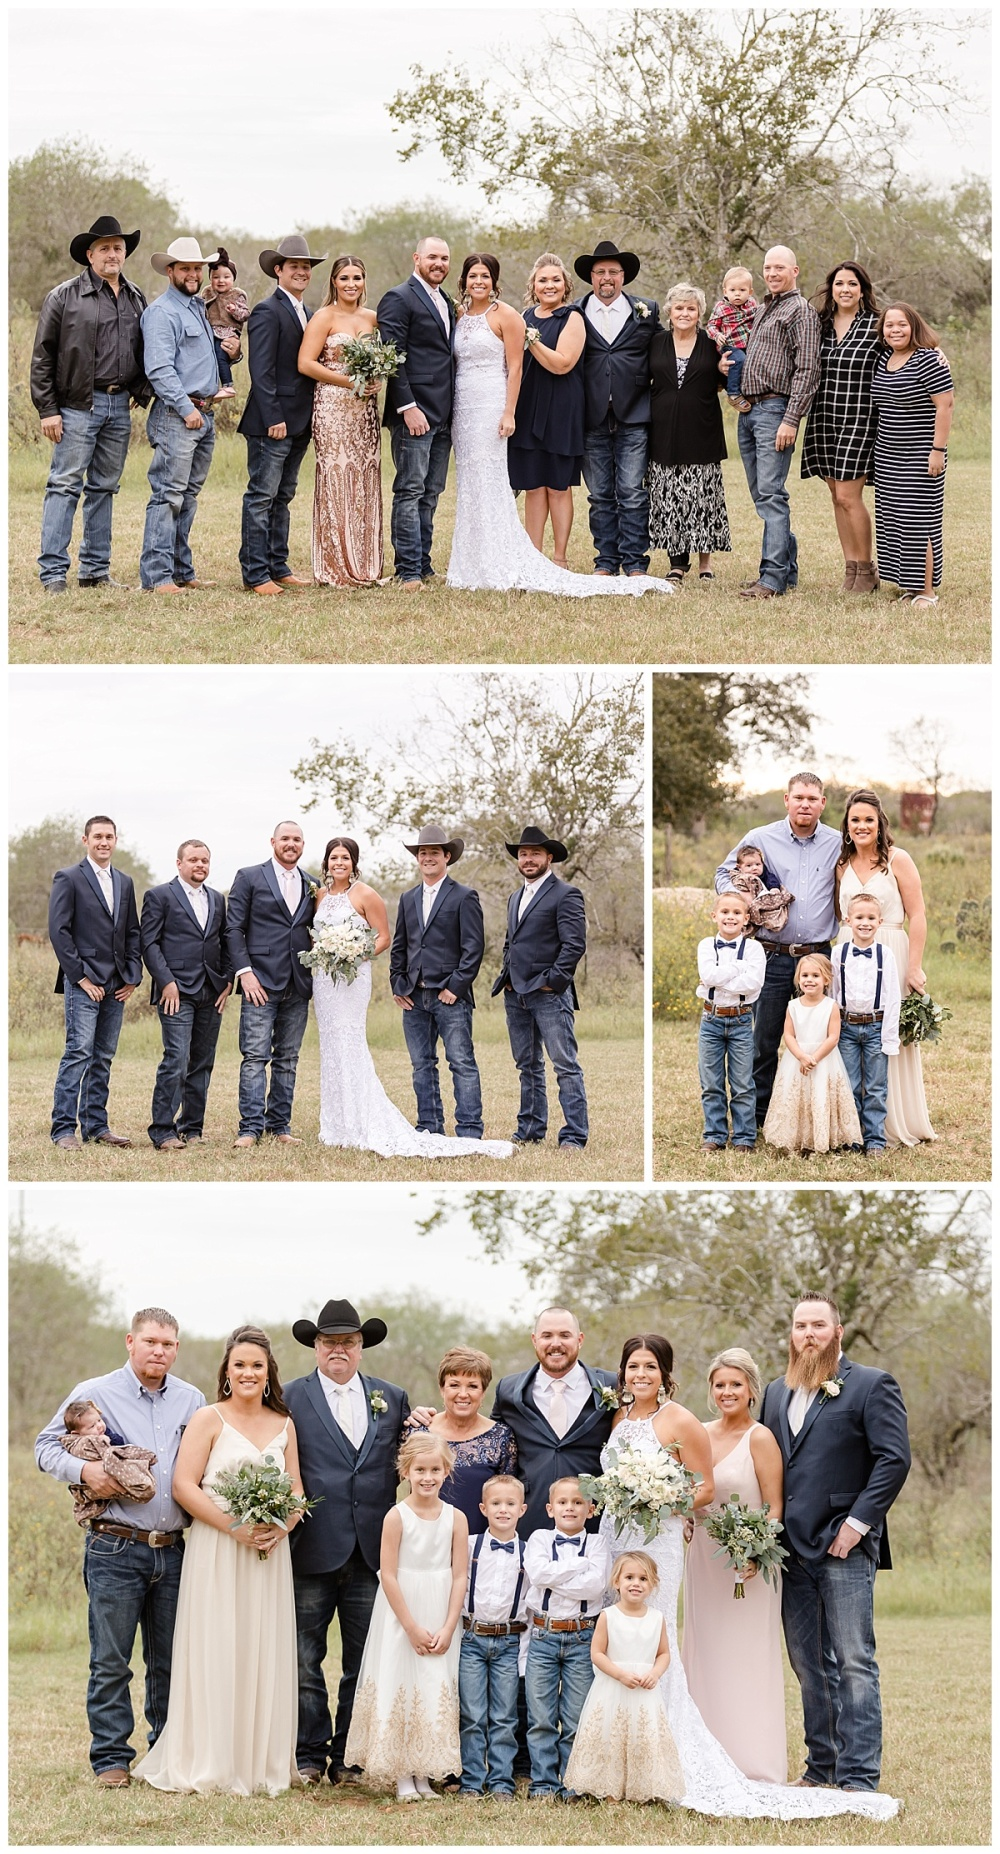 South-Texas-Wedding-Photographer-Rose-Gold-and-Navy-Theme-LaVernia-Bride-Groom-Carly-Barton-Photography_0063